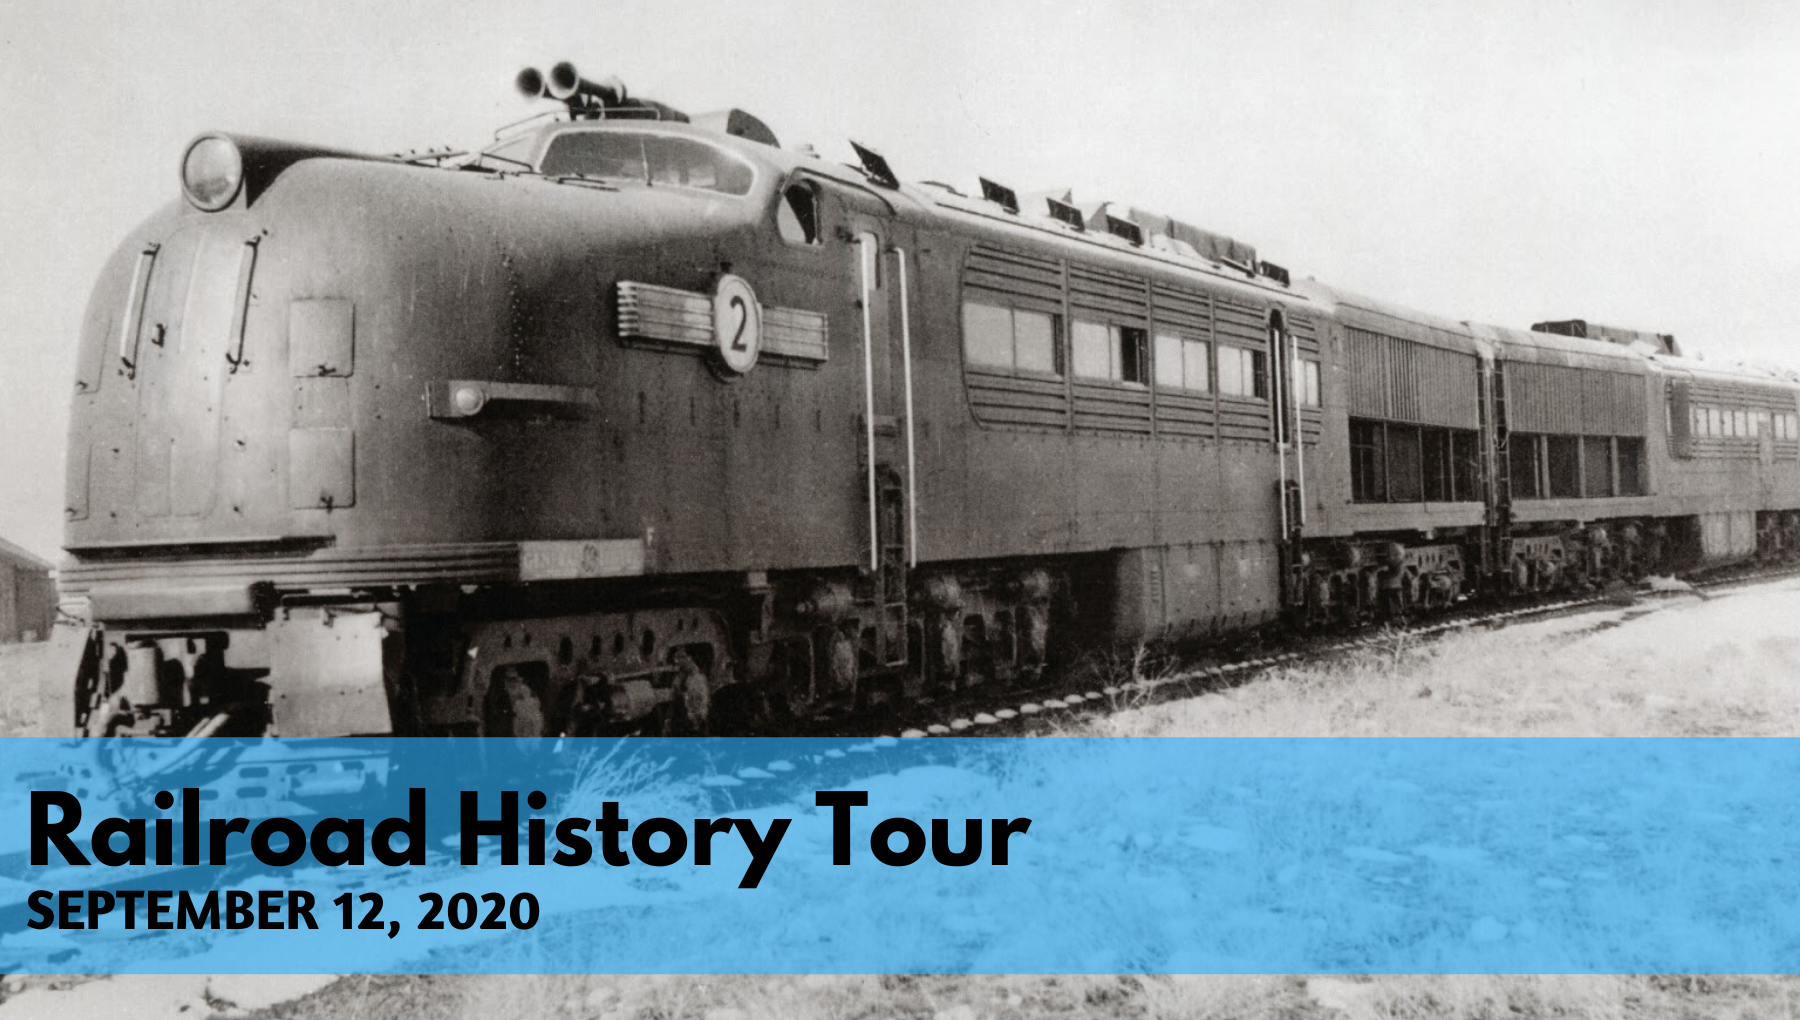 Railroad History Tour September 12